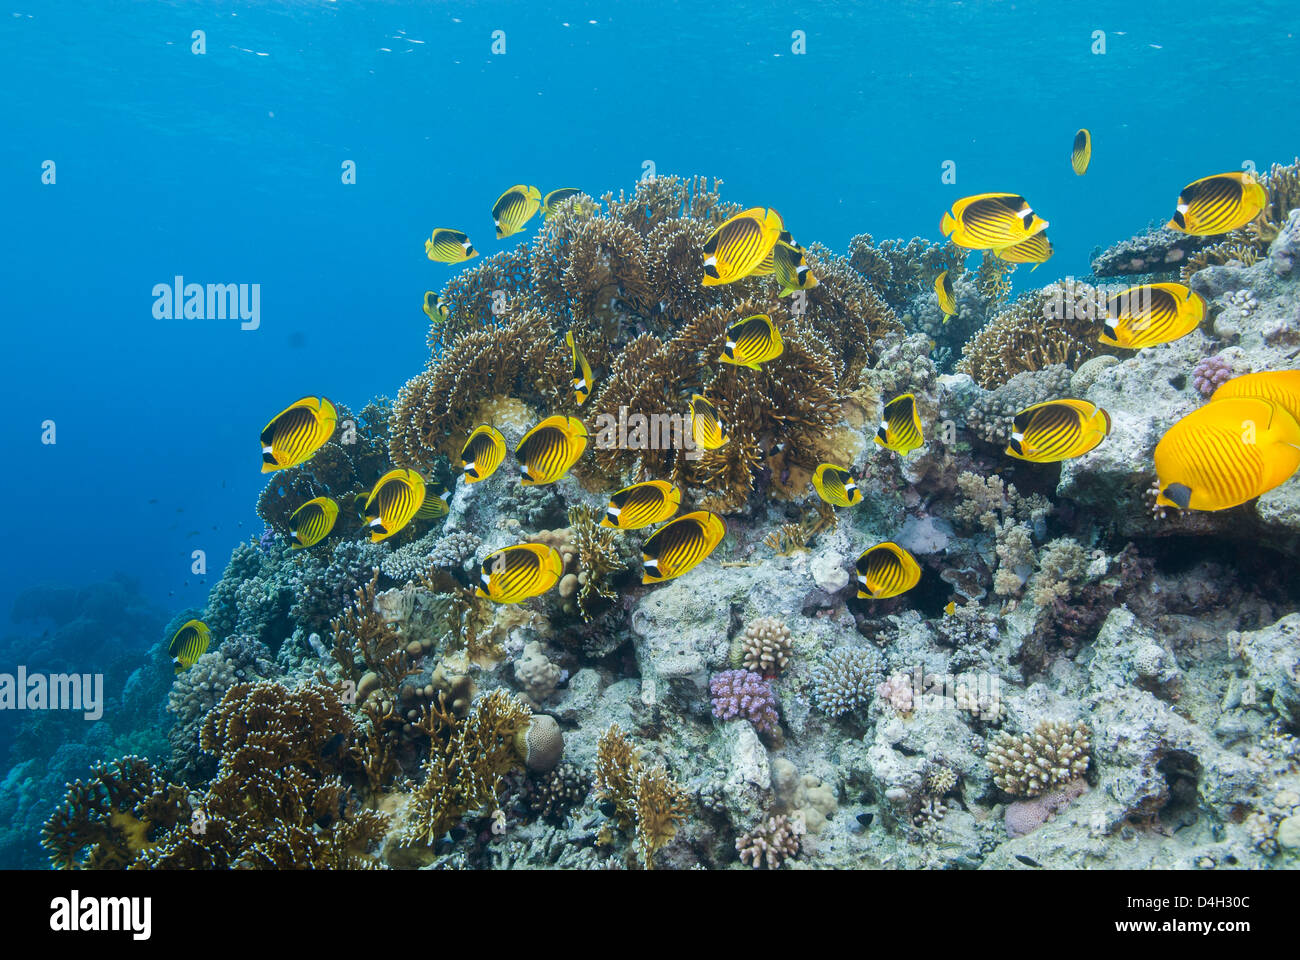 Shoal of Red Sea raccoon butterflyfish, Ras Mohammed National Park, off Sharm el Sheikh, Sinai, Egypt, Red Sea, - Stock Image